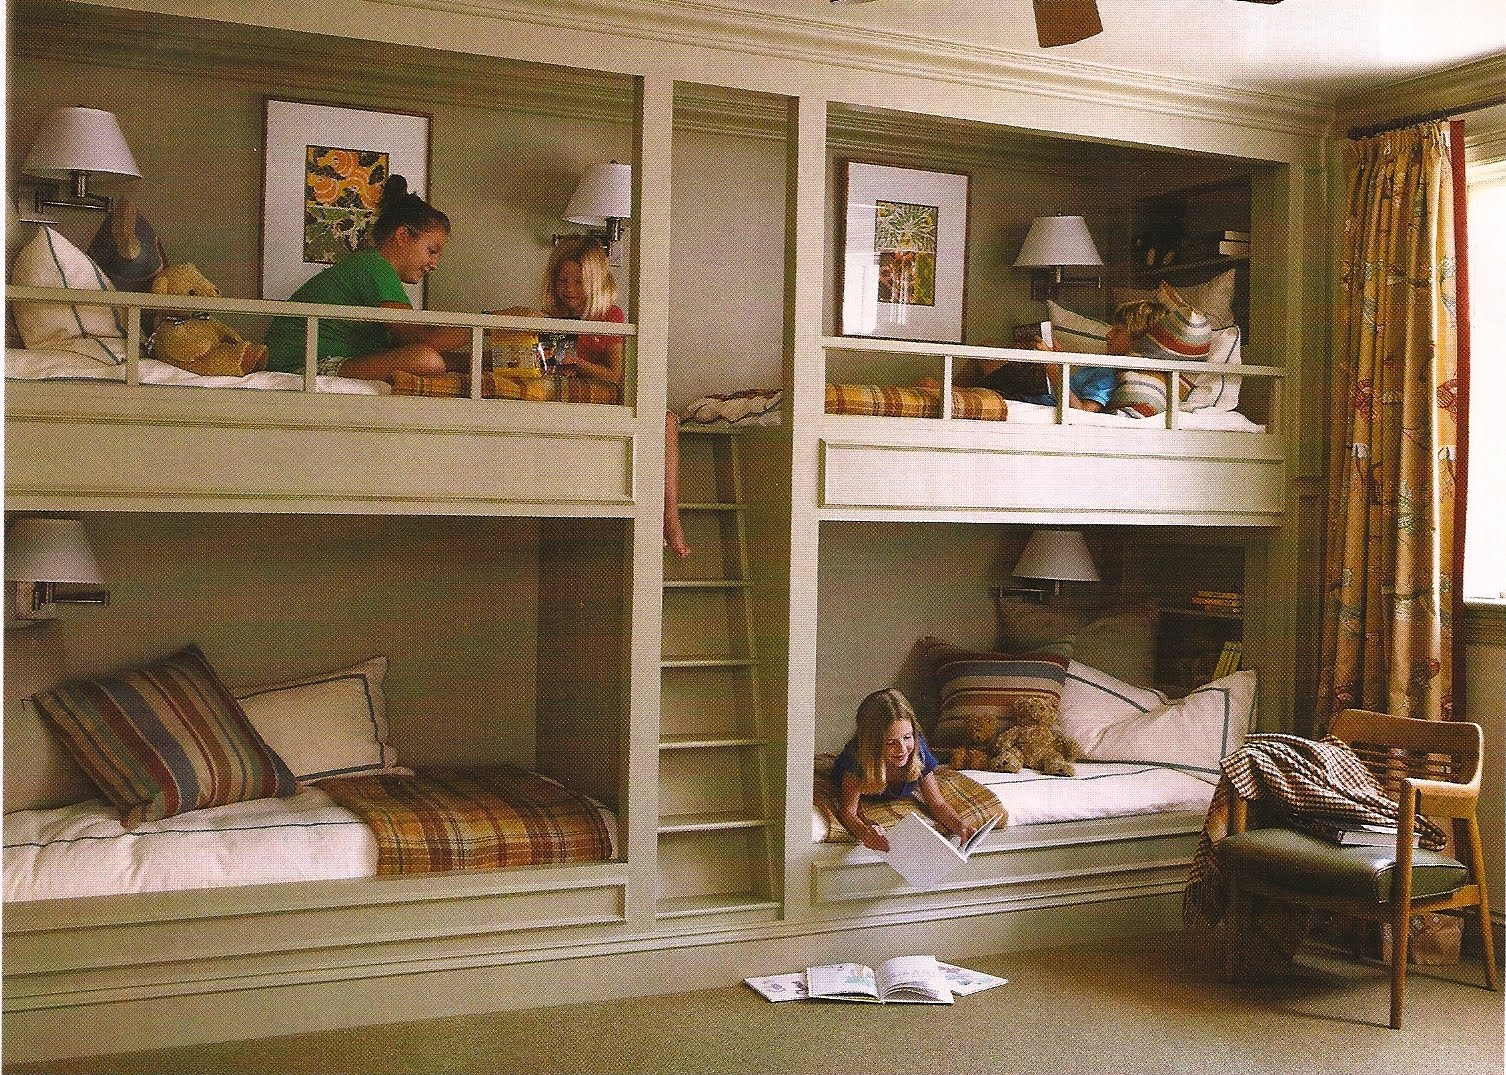 Built In Beds On Pinterest Bunk Bed Adult Loft Bed And